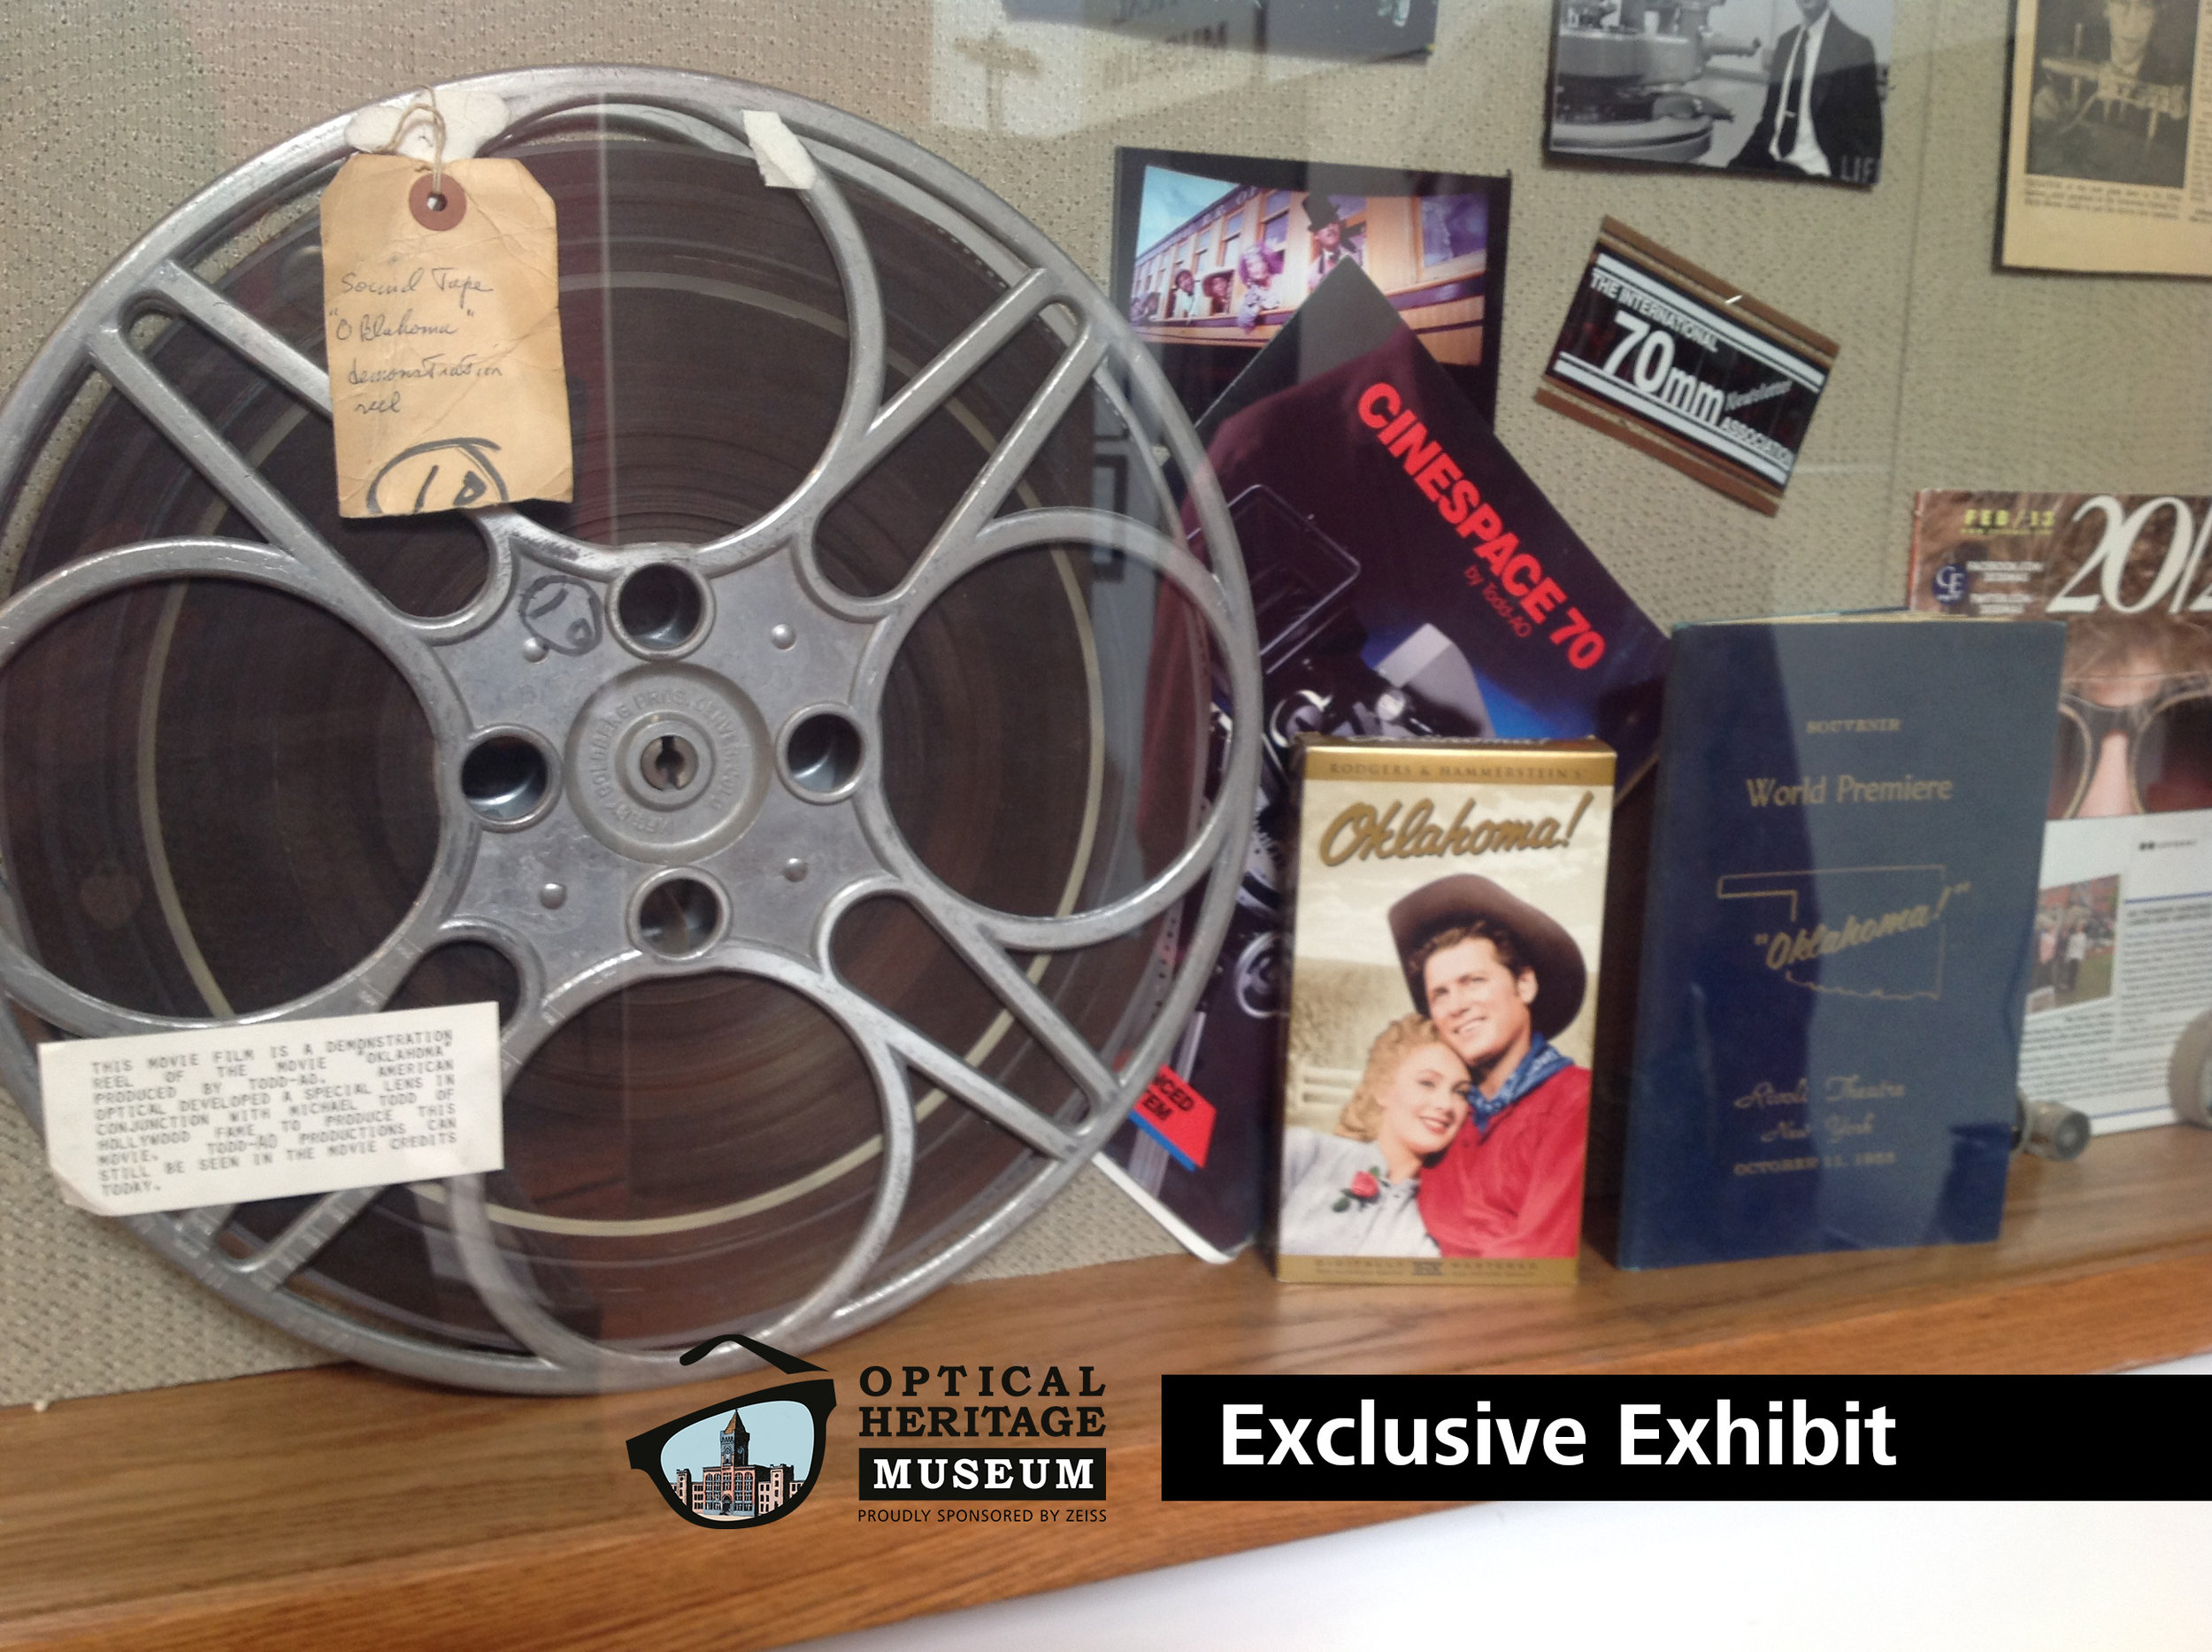 The original movie reel for Oaklahoma (1955) - Exclusive to the Optical Heritage Museum